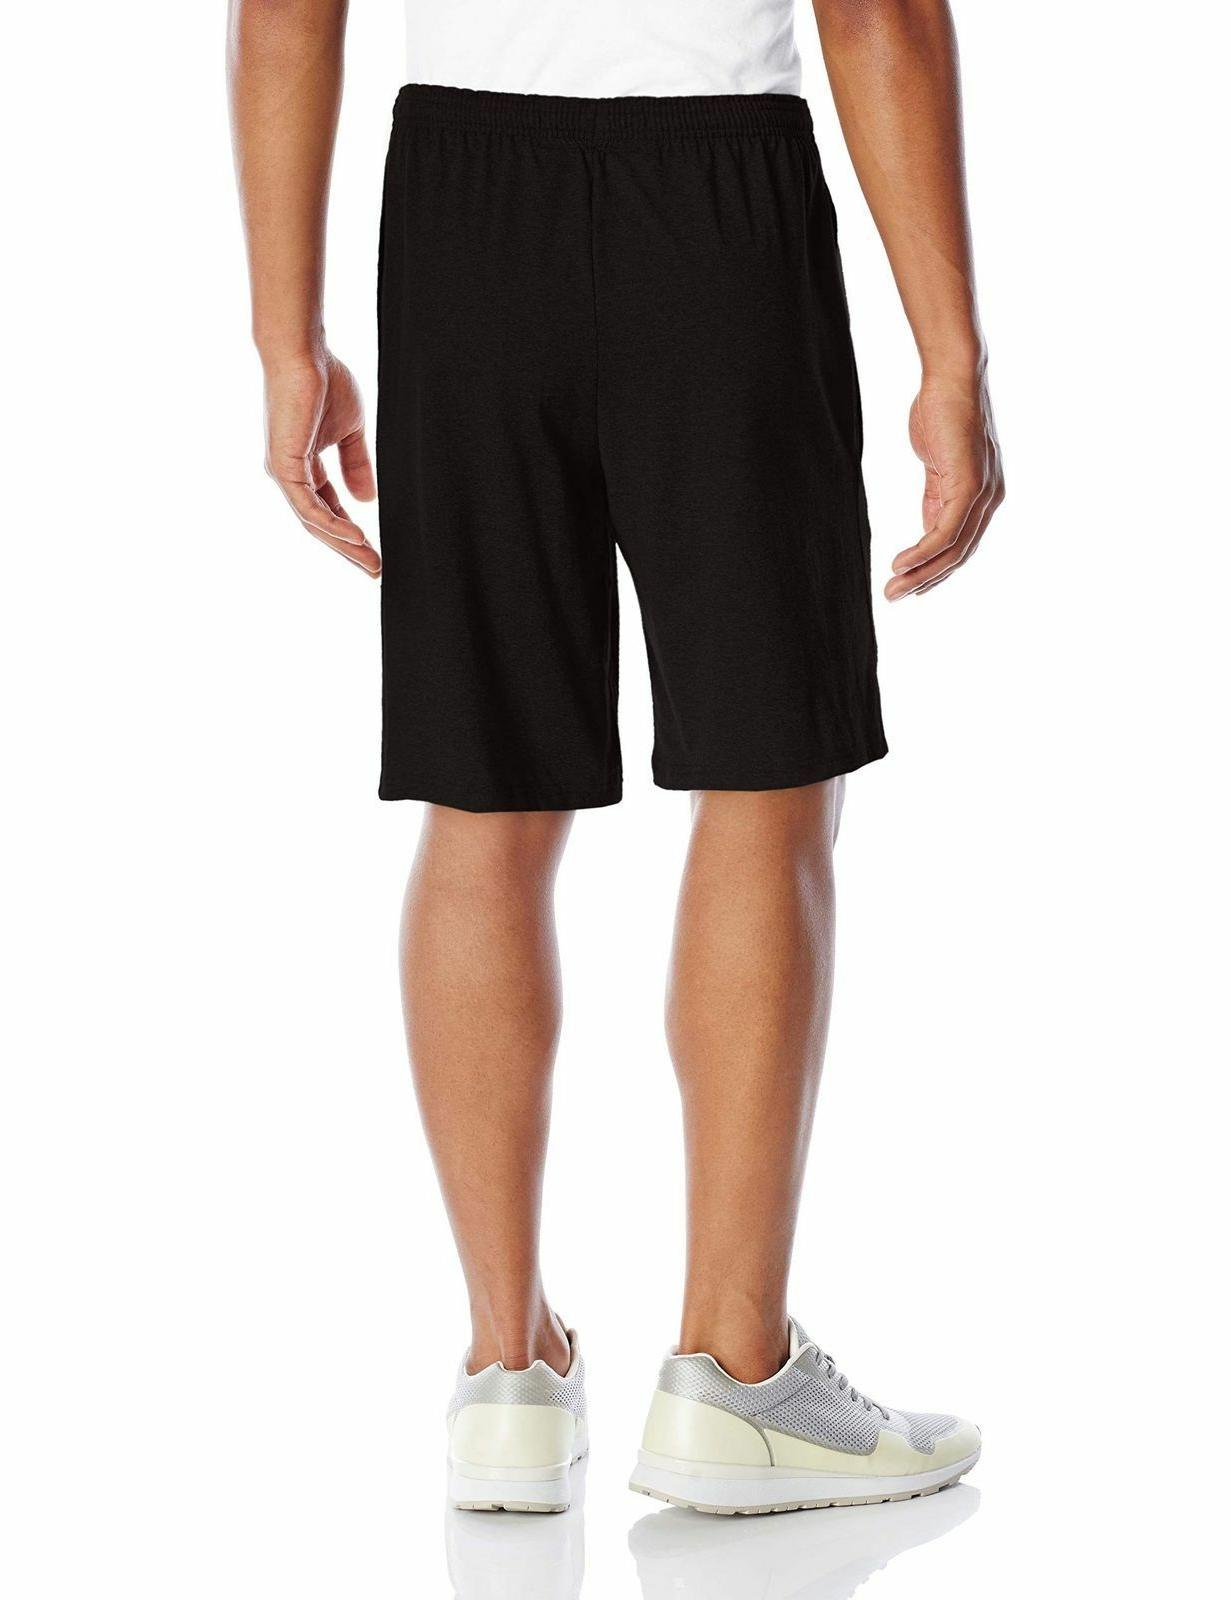 NEW Champion Men's Jersey Short XL Inseam Athleisure